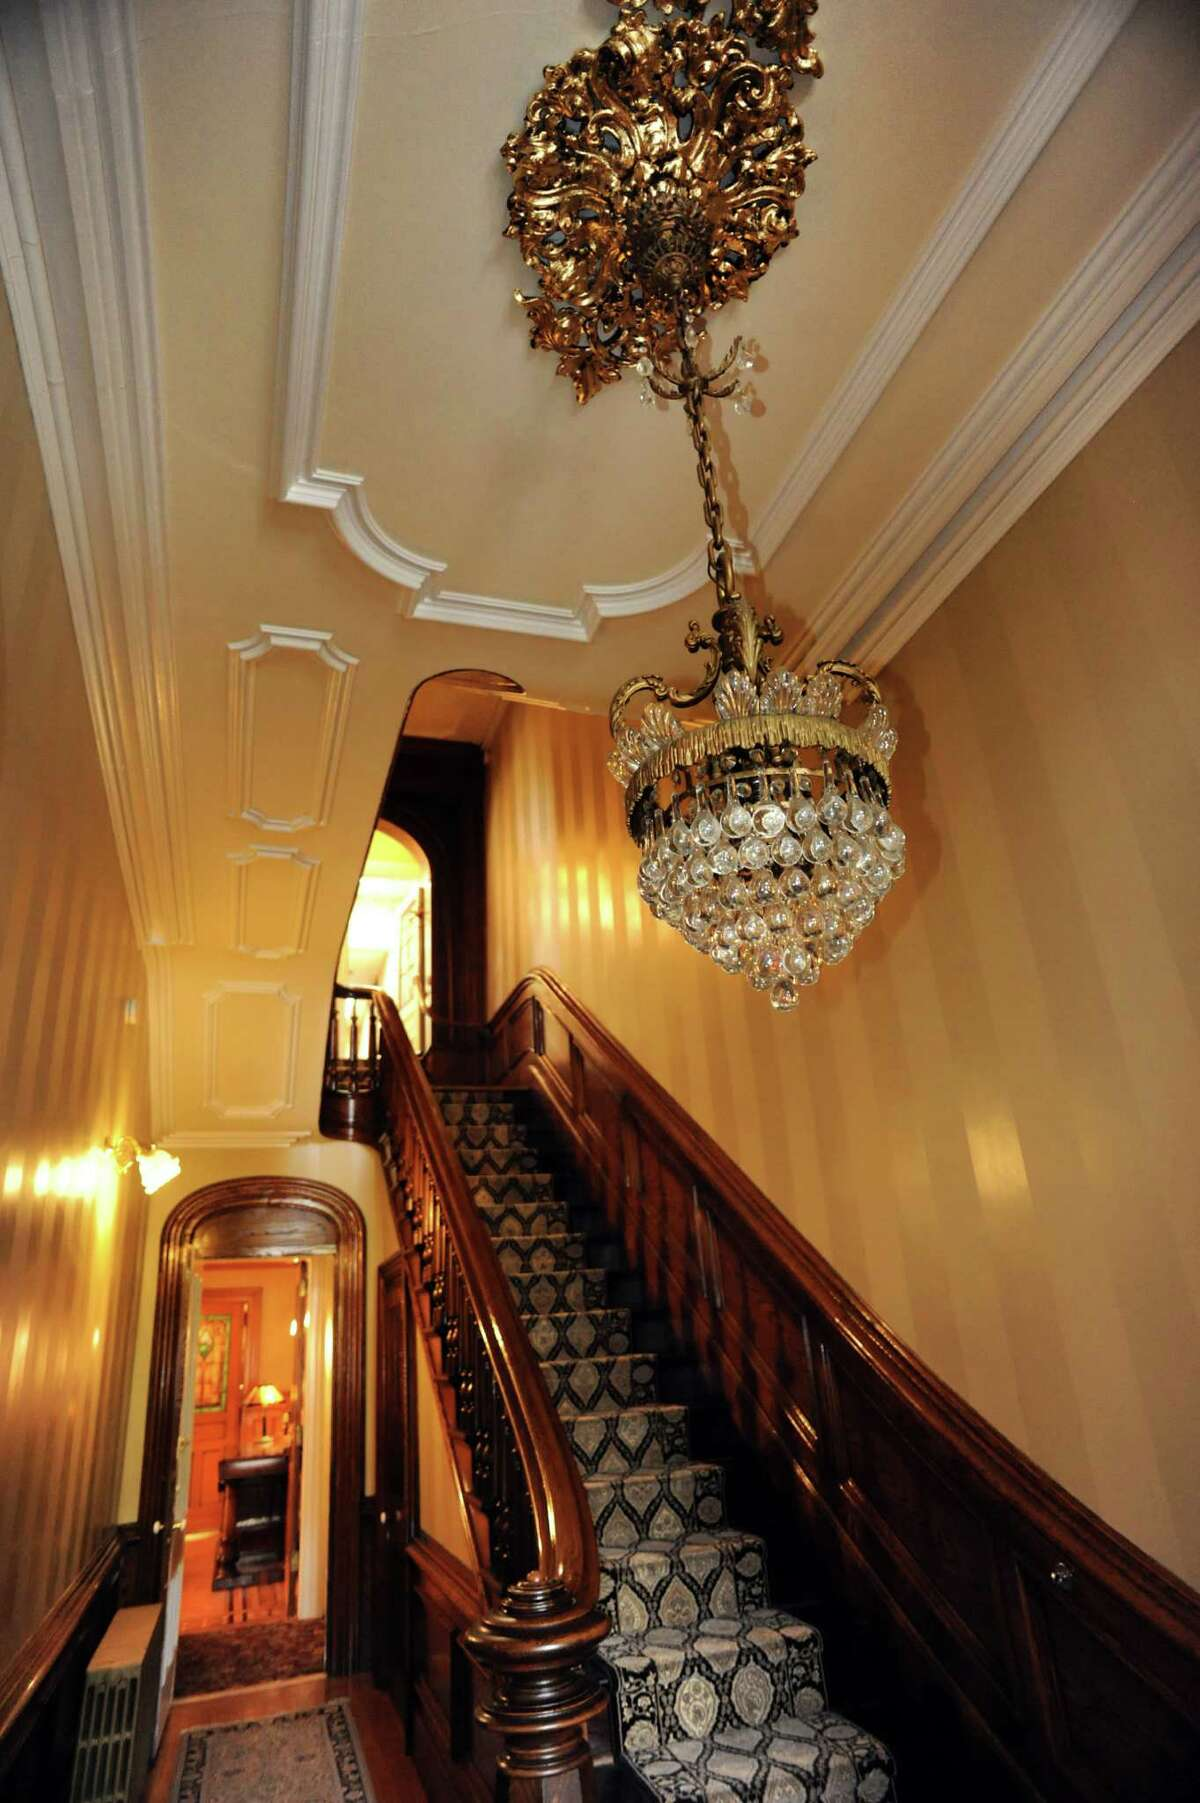 Built as a private home in 1862, the first and second floors of the brownstone were converted to office space in 1978. The entryway and staircase to the second floor on Tuesday, Oct. 15, 2013, at Bouchey Financial Group in Troy, N.Y. (Cindy Schultz / Times Union)